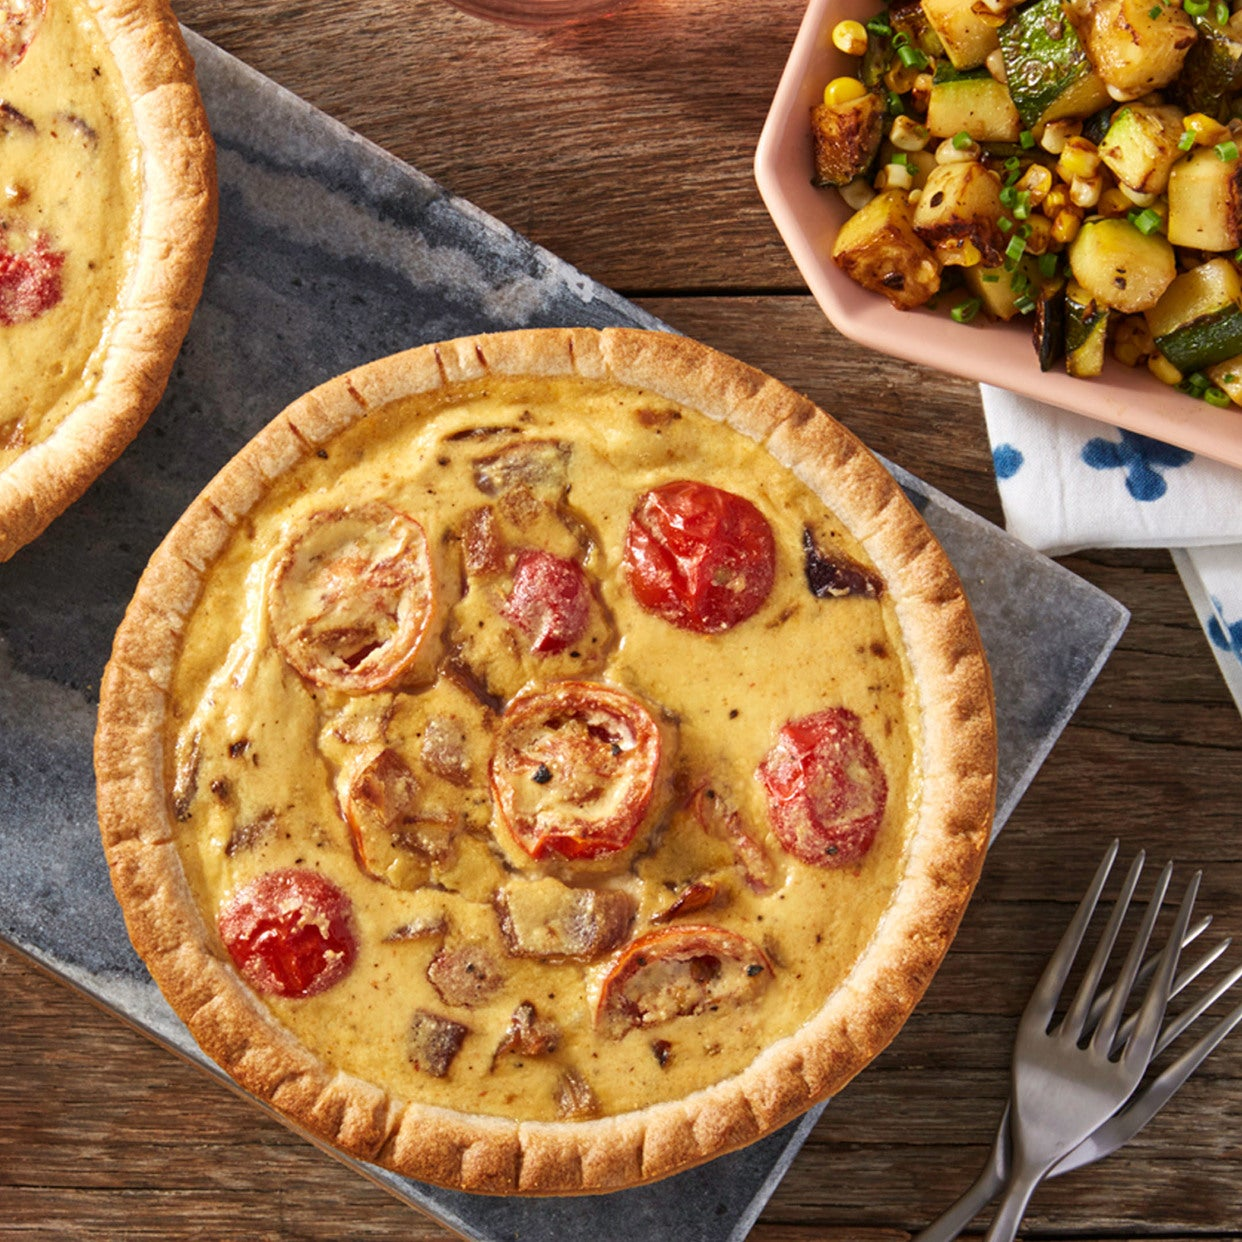 Cherry Tomato & Onion Quiches with Sautéed Corn & Summer Squash